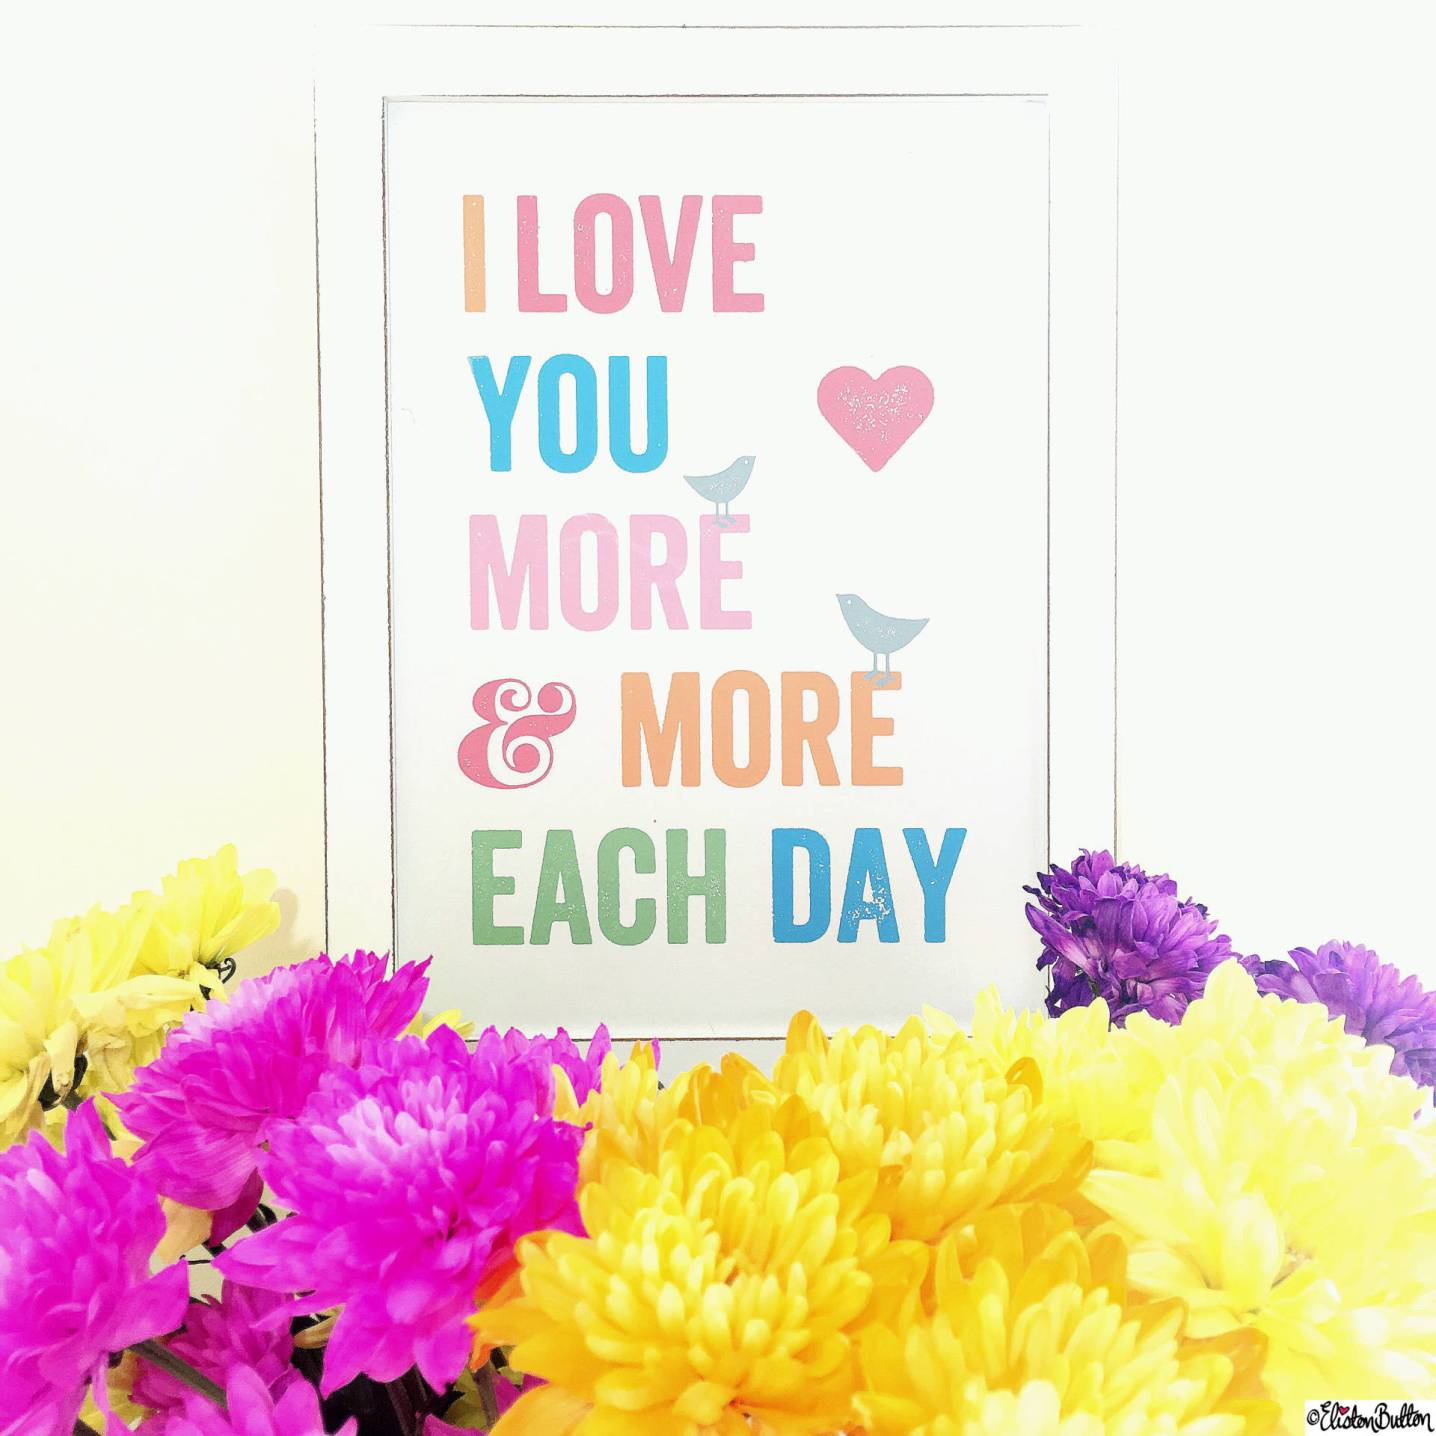 Day 12 - Text - I love You More and More Each Day - Photo-a-Day – May 2016 at www.elistonbutton.com - Eliston Button - That Crafty Kid – Art, Design, Craft & Adventure.